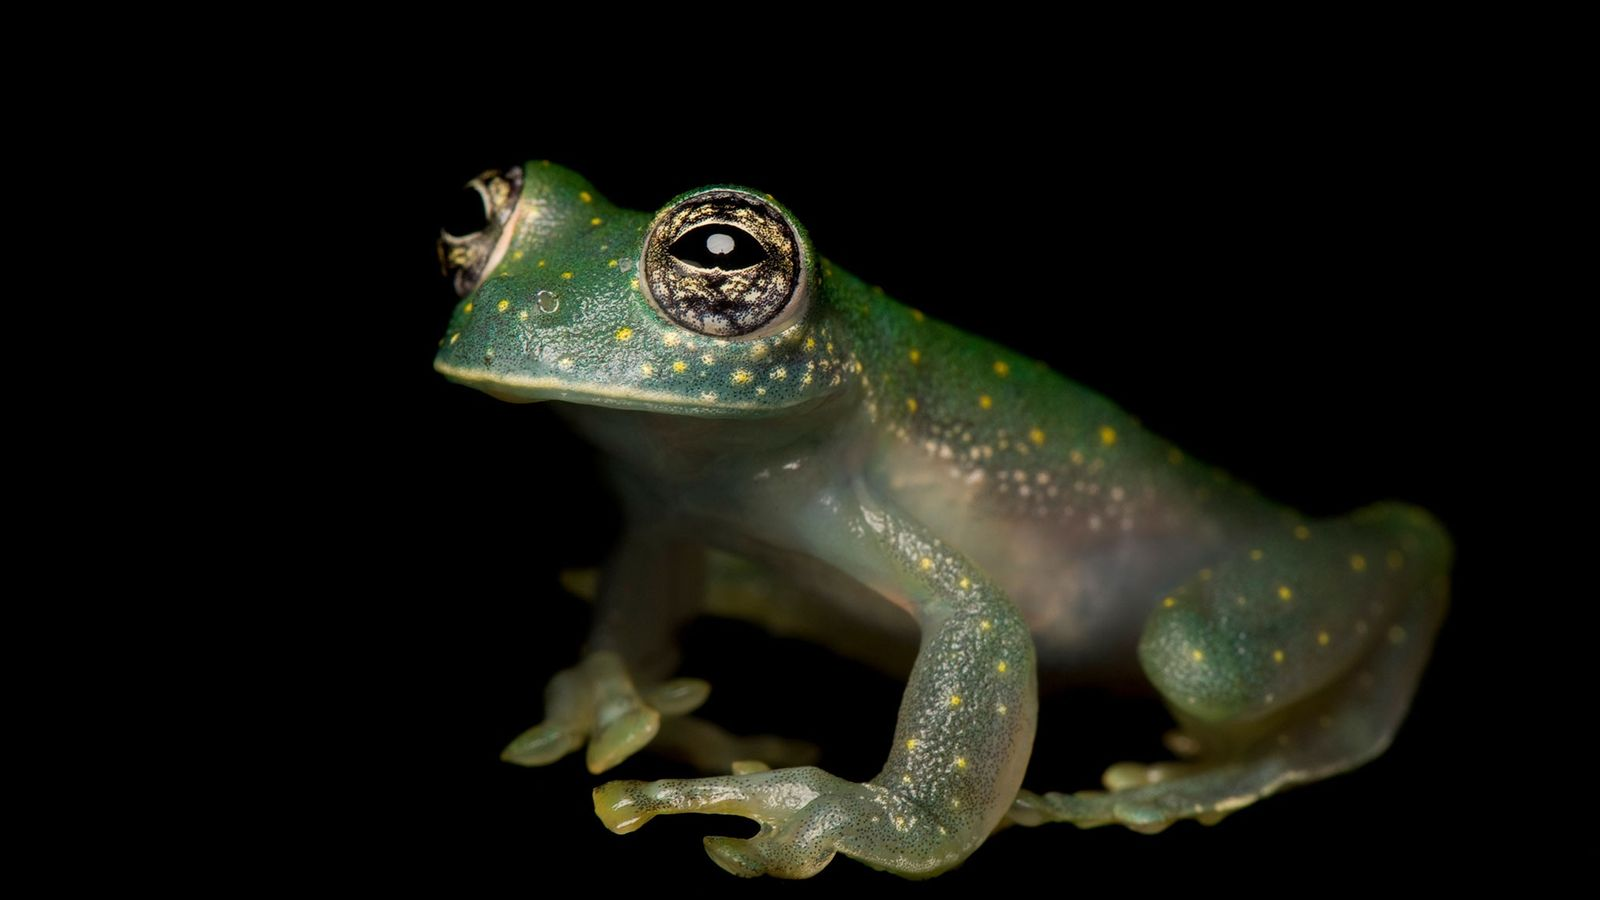 Glass frogs were among the more than 500 species considered for protections at this year's CITES ...